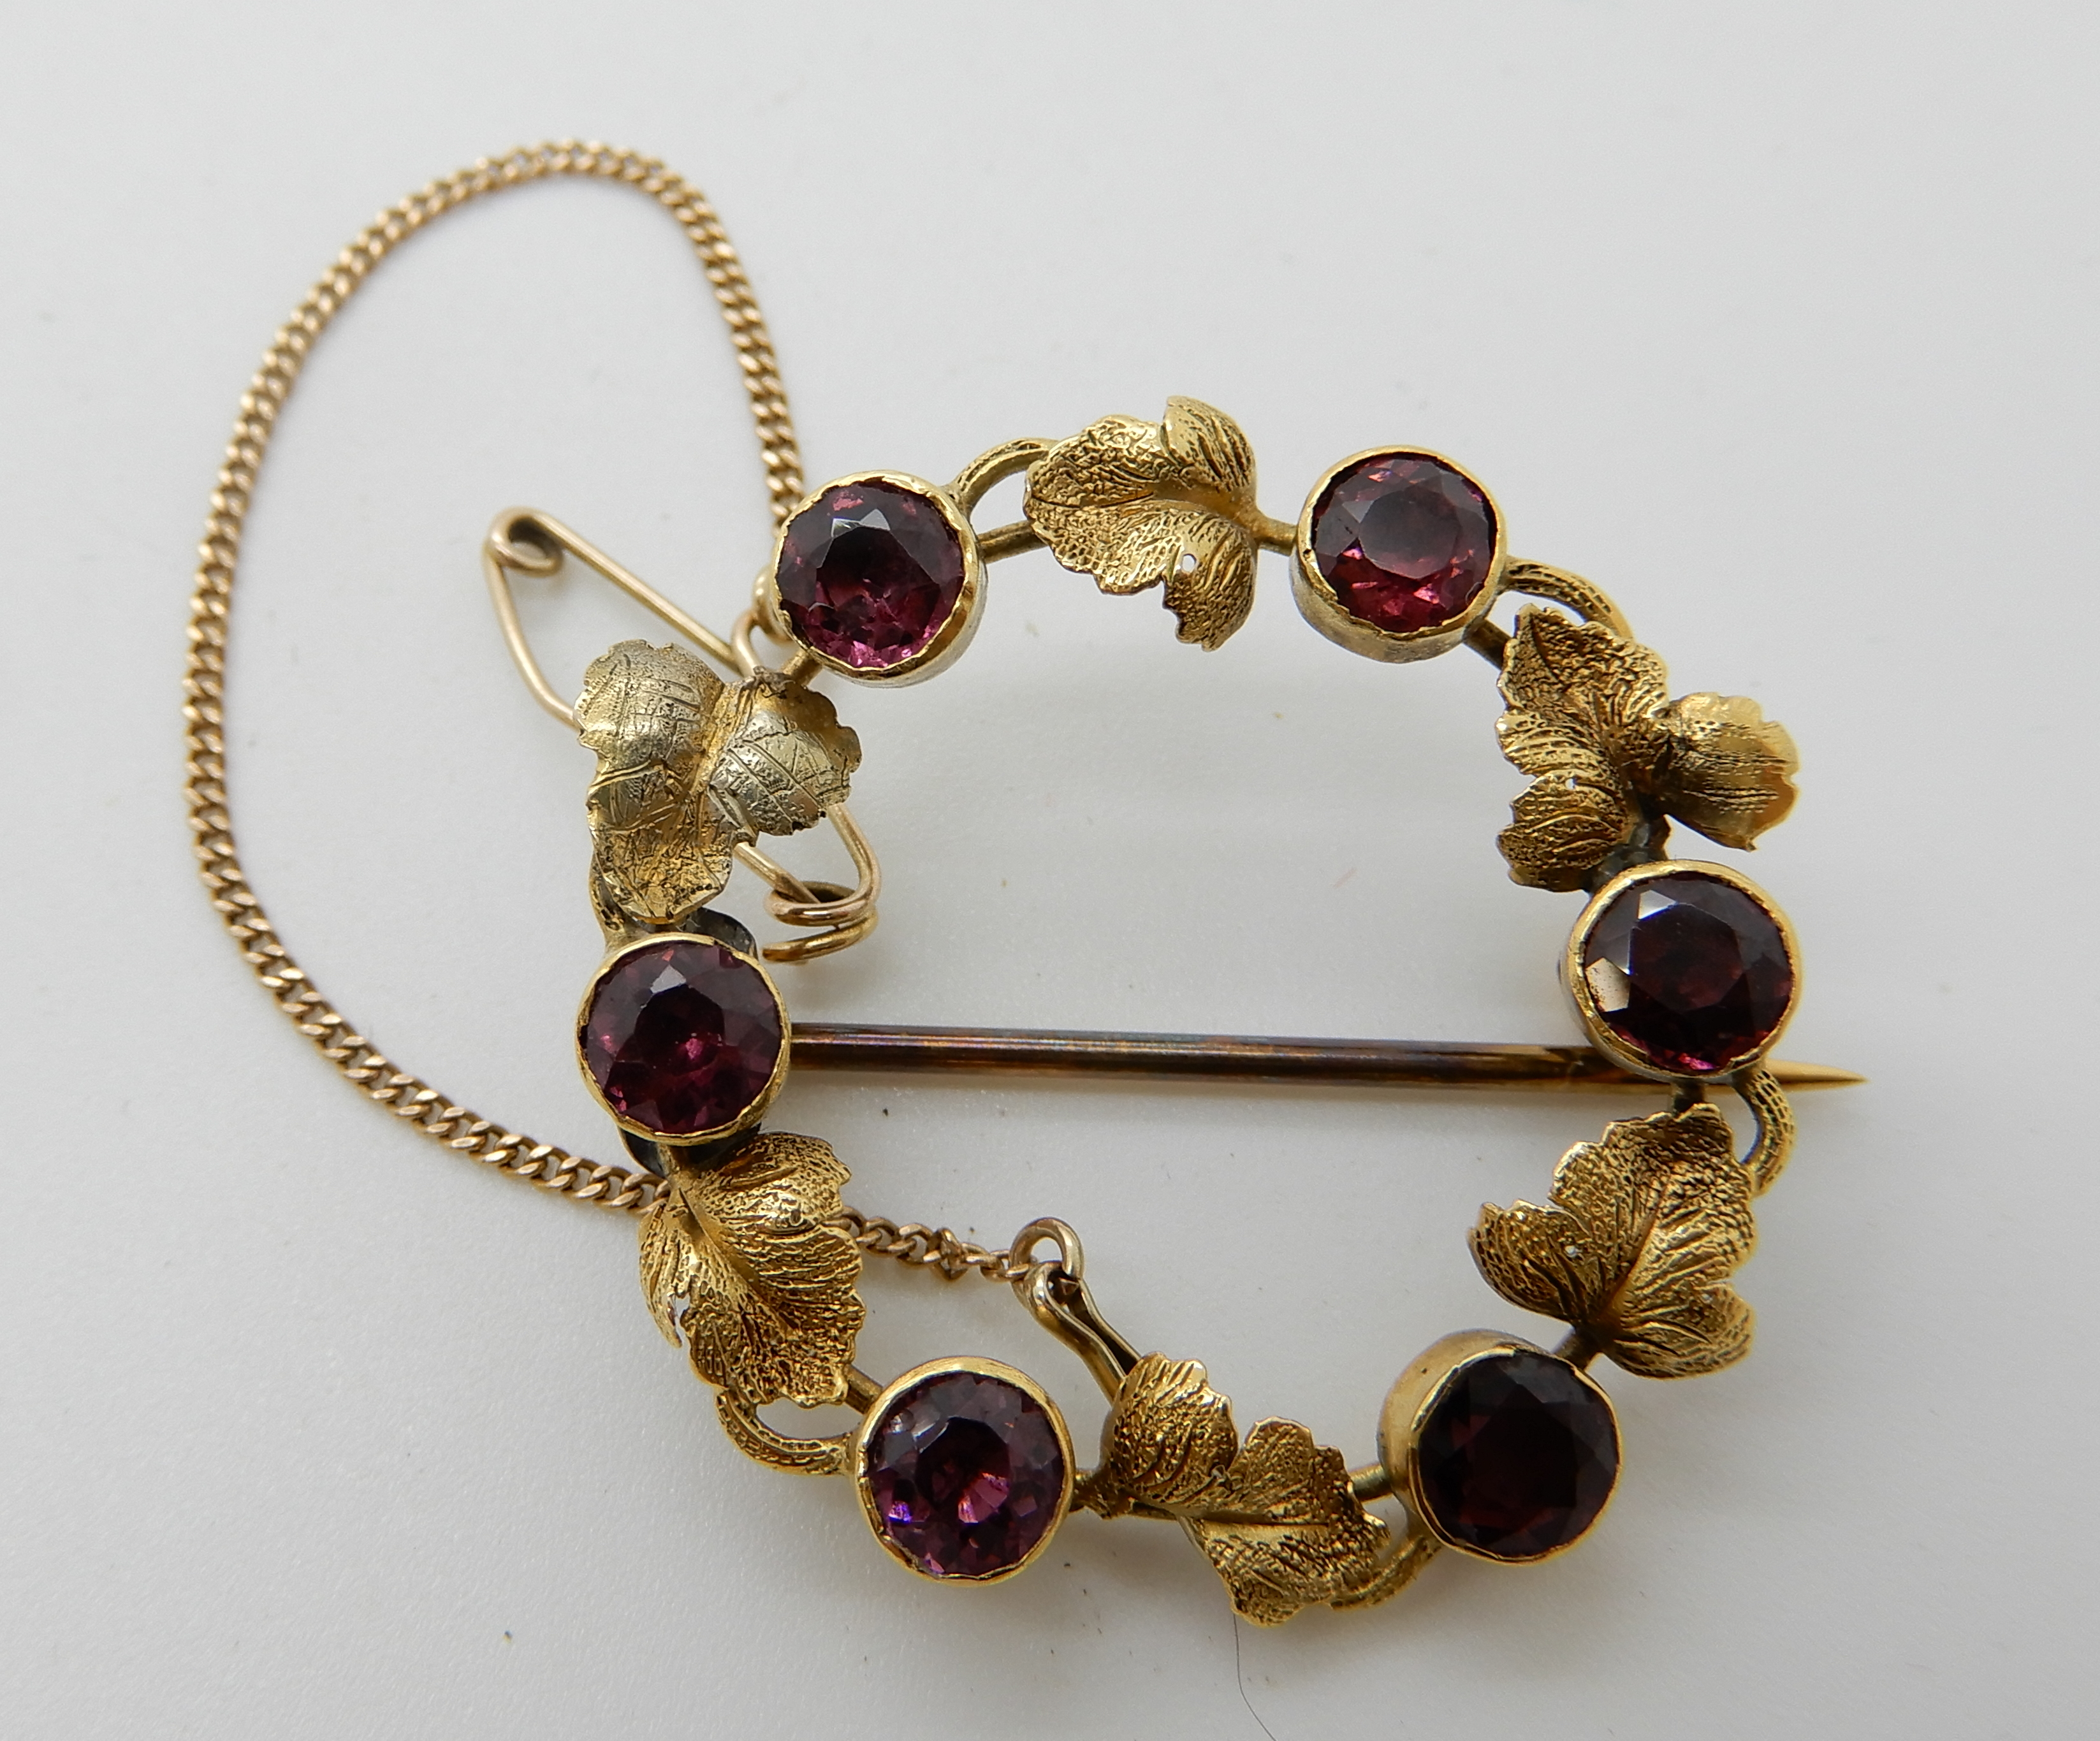 Lot 40 - A bright yellow metal leaf brooch set with garnets, weight 3.7gms Condition Report: Available upon